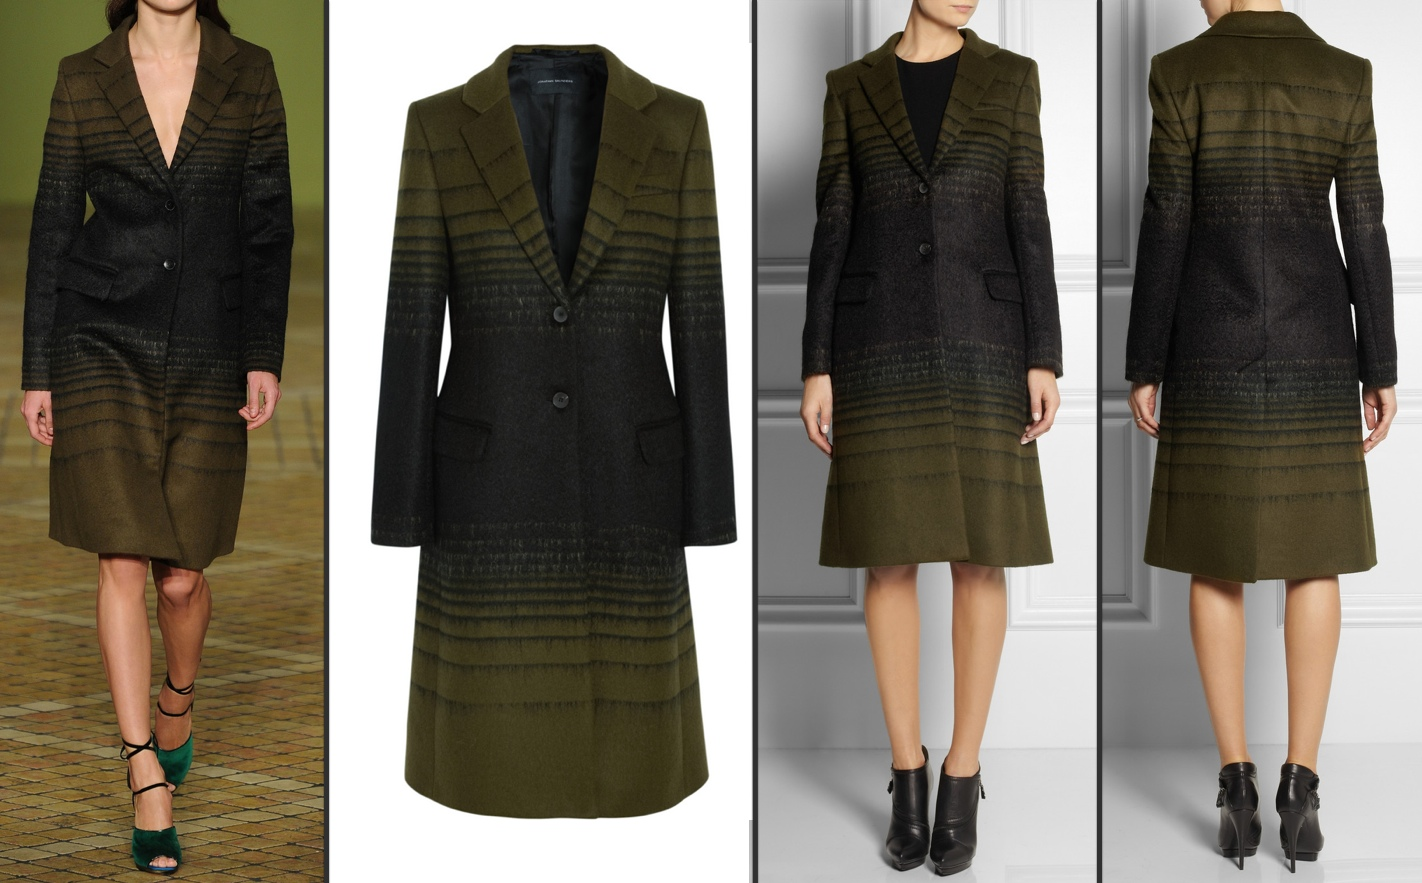 'Athena' Coat by Jonathan Saunders at Net-a-Porter